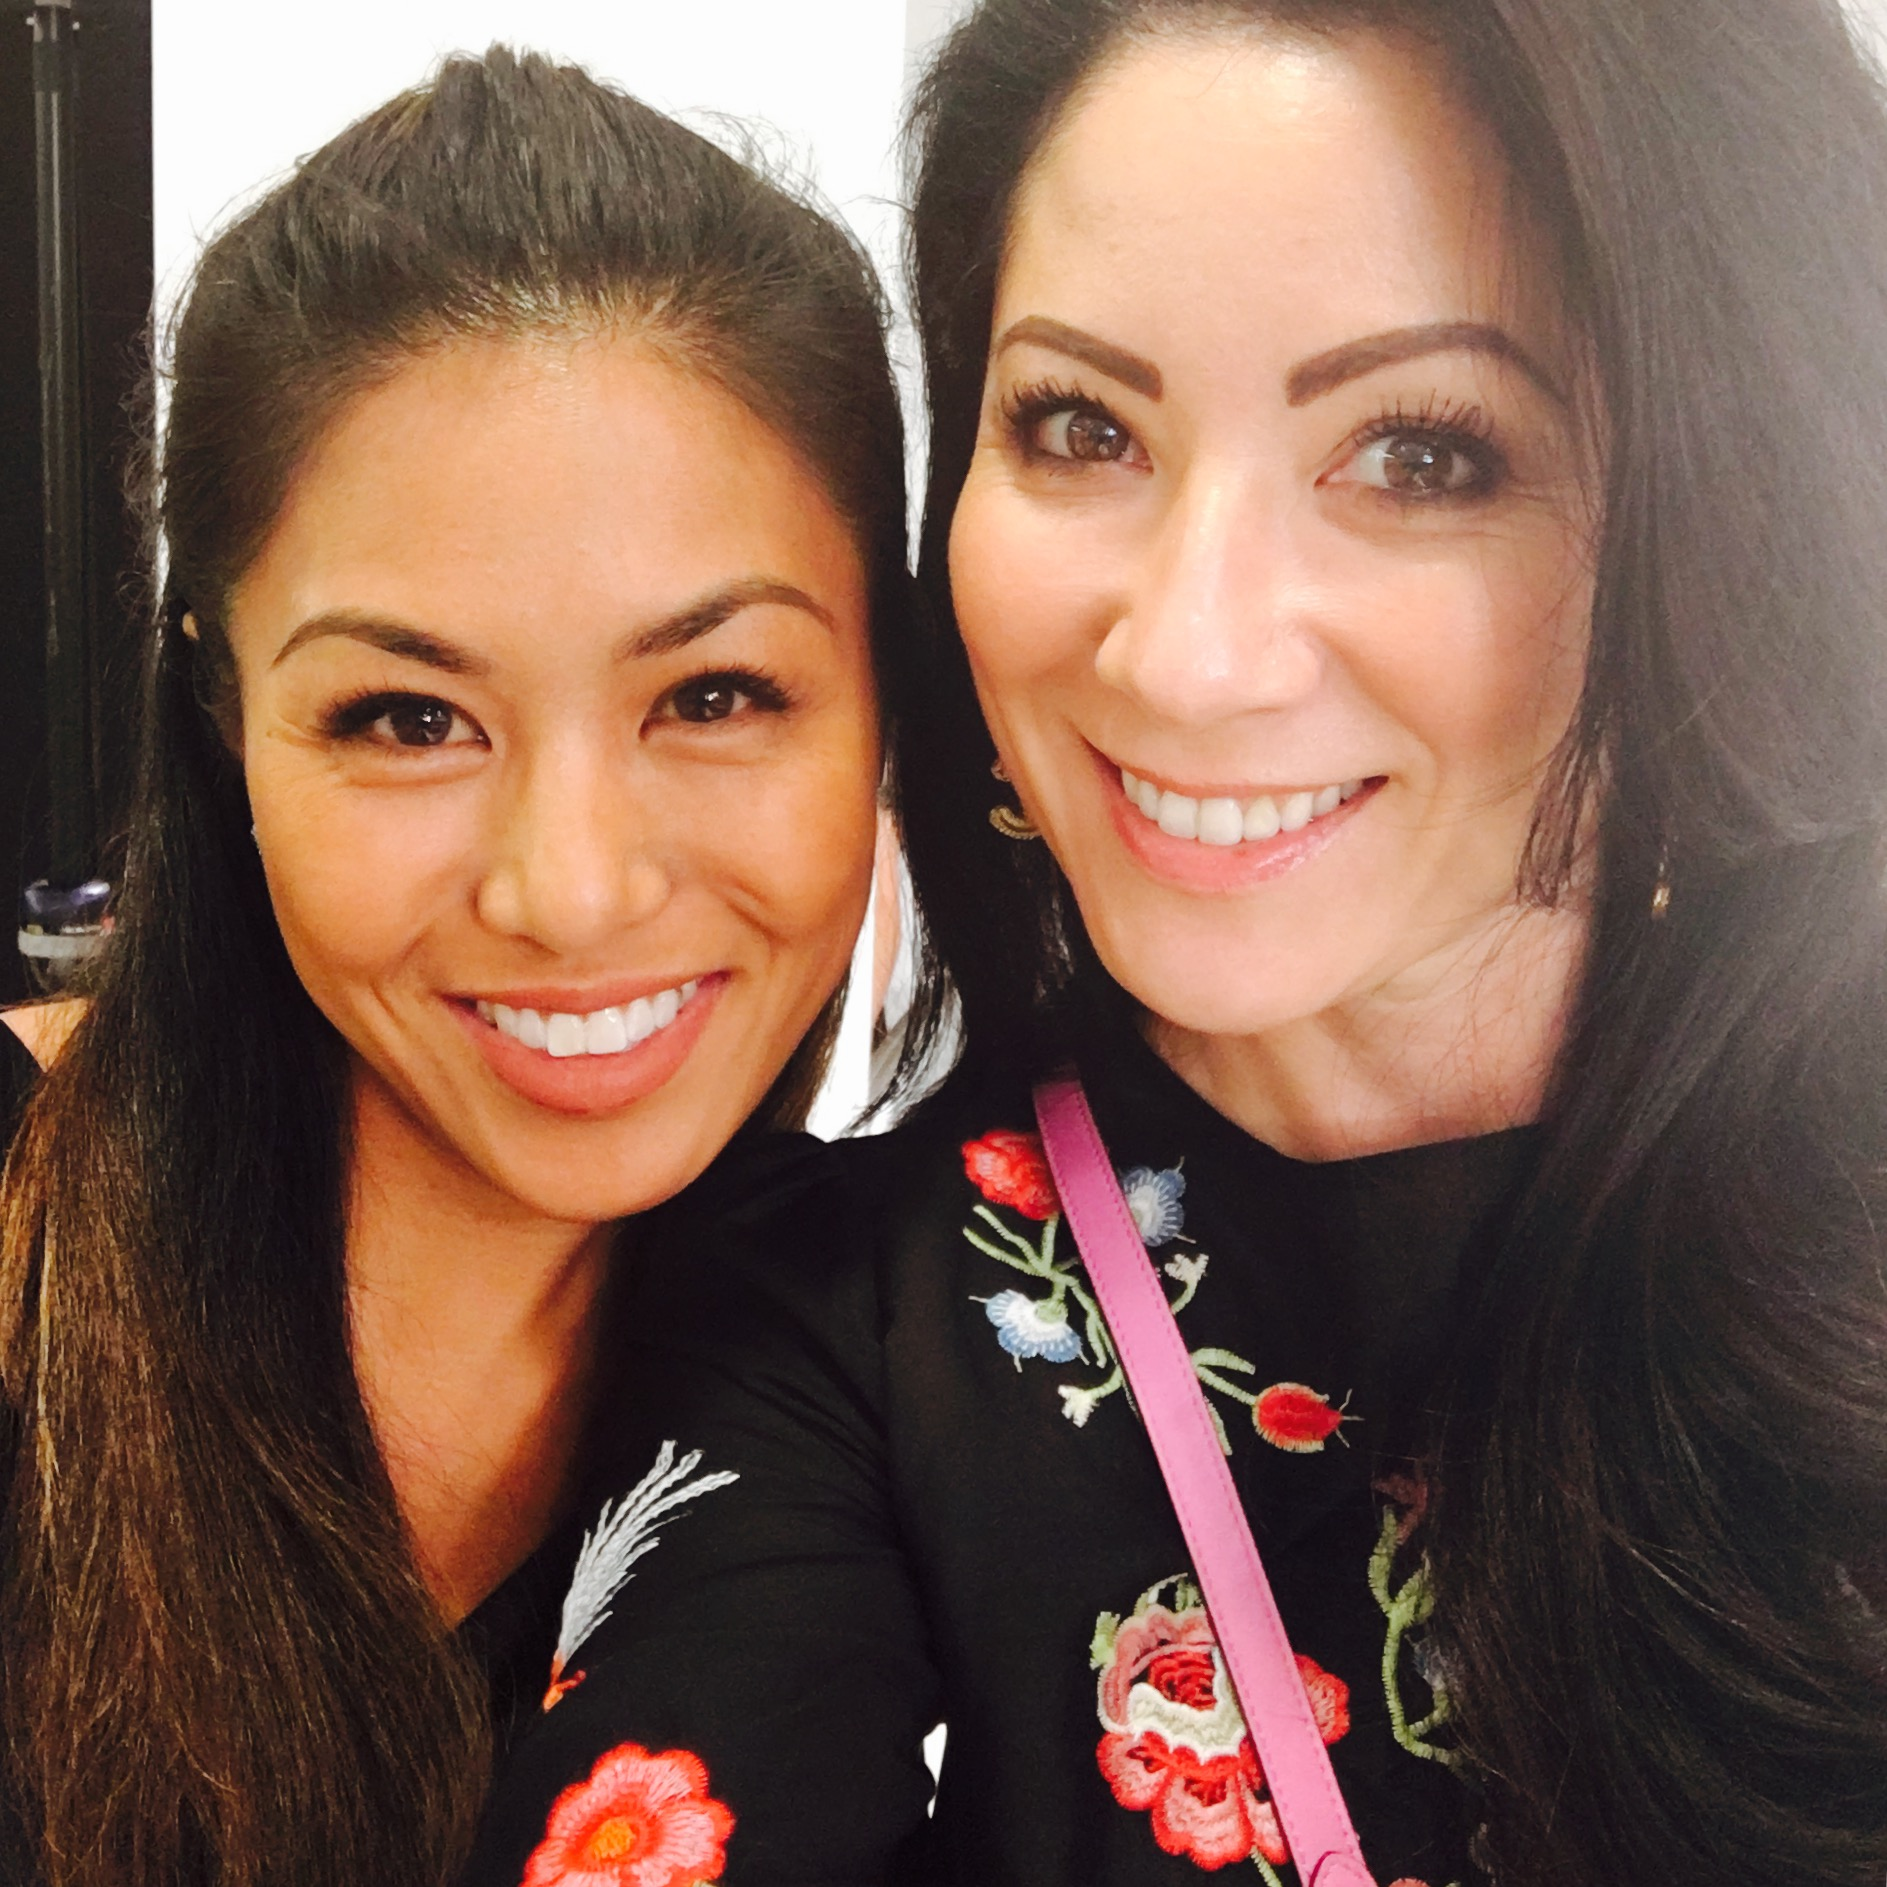 Valerie Dela Cruz-Nash and Christina Clay in Neiman Marcus Fashion Island Newport Beach CA